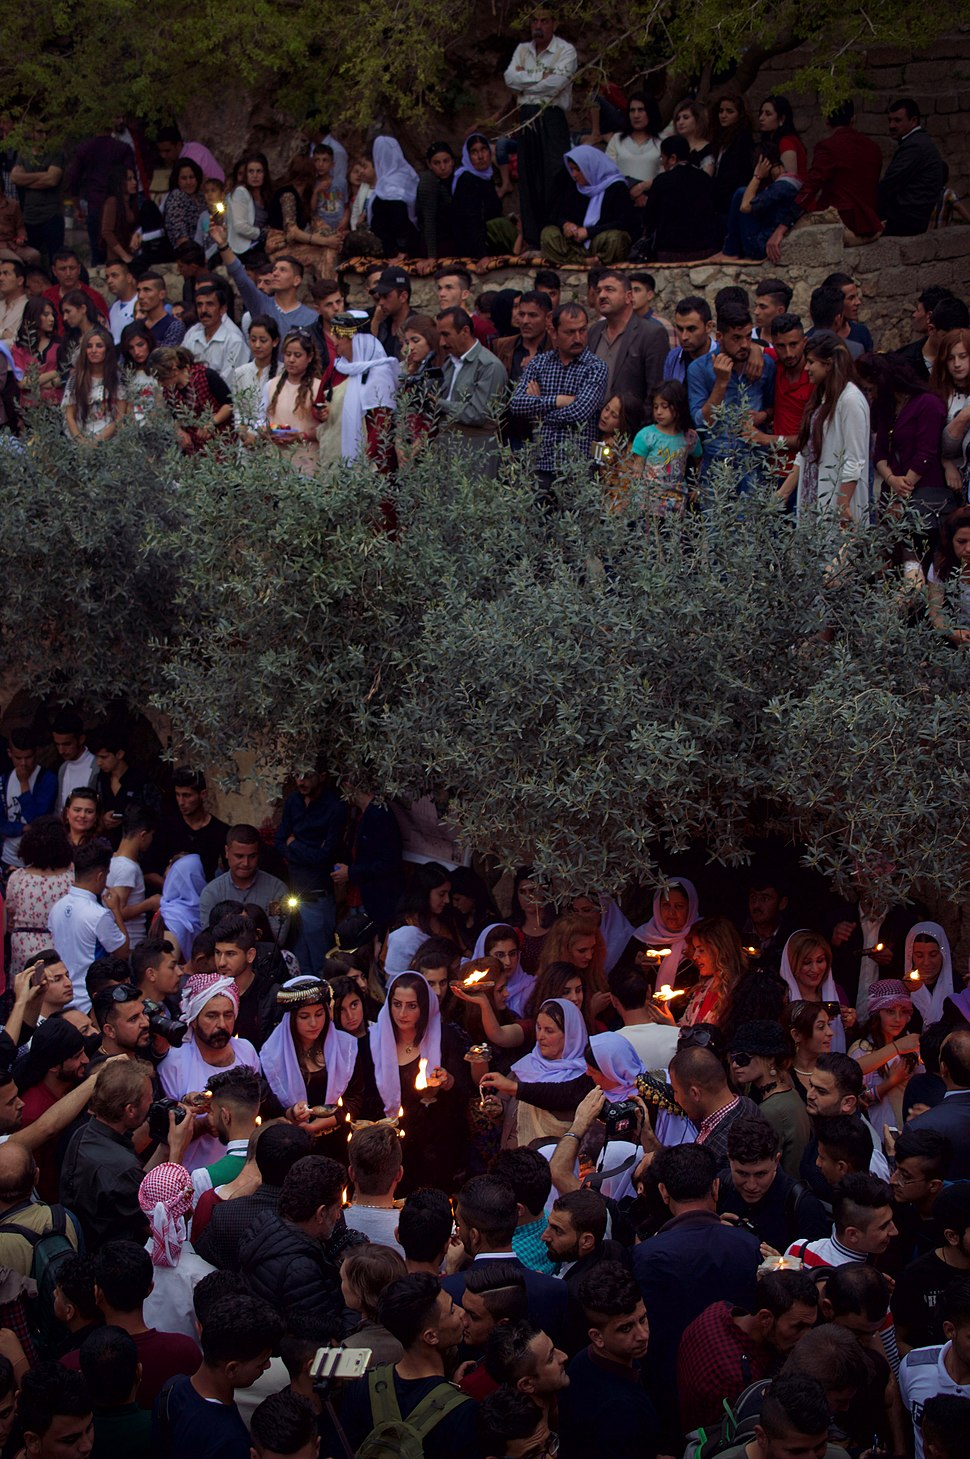 Pilgrims and festival at Lalish on the day of the Yezidi New Year in 2017 06